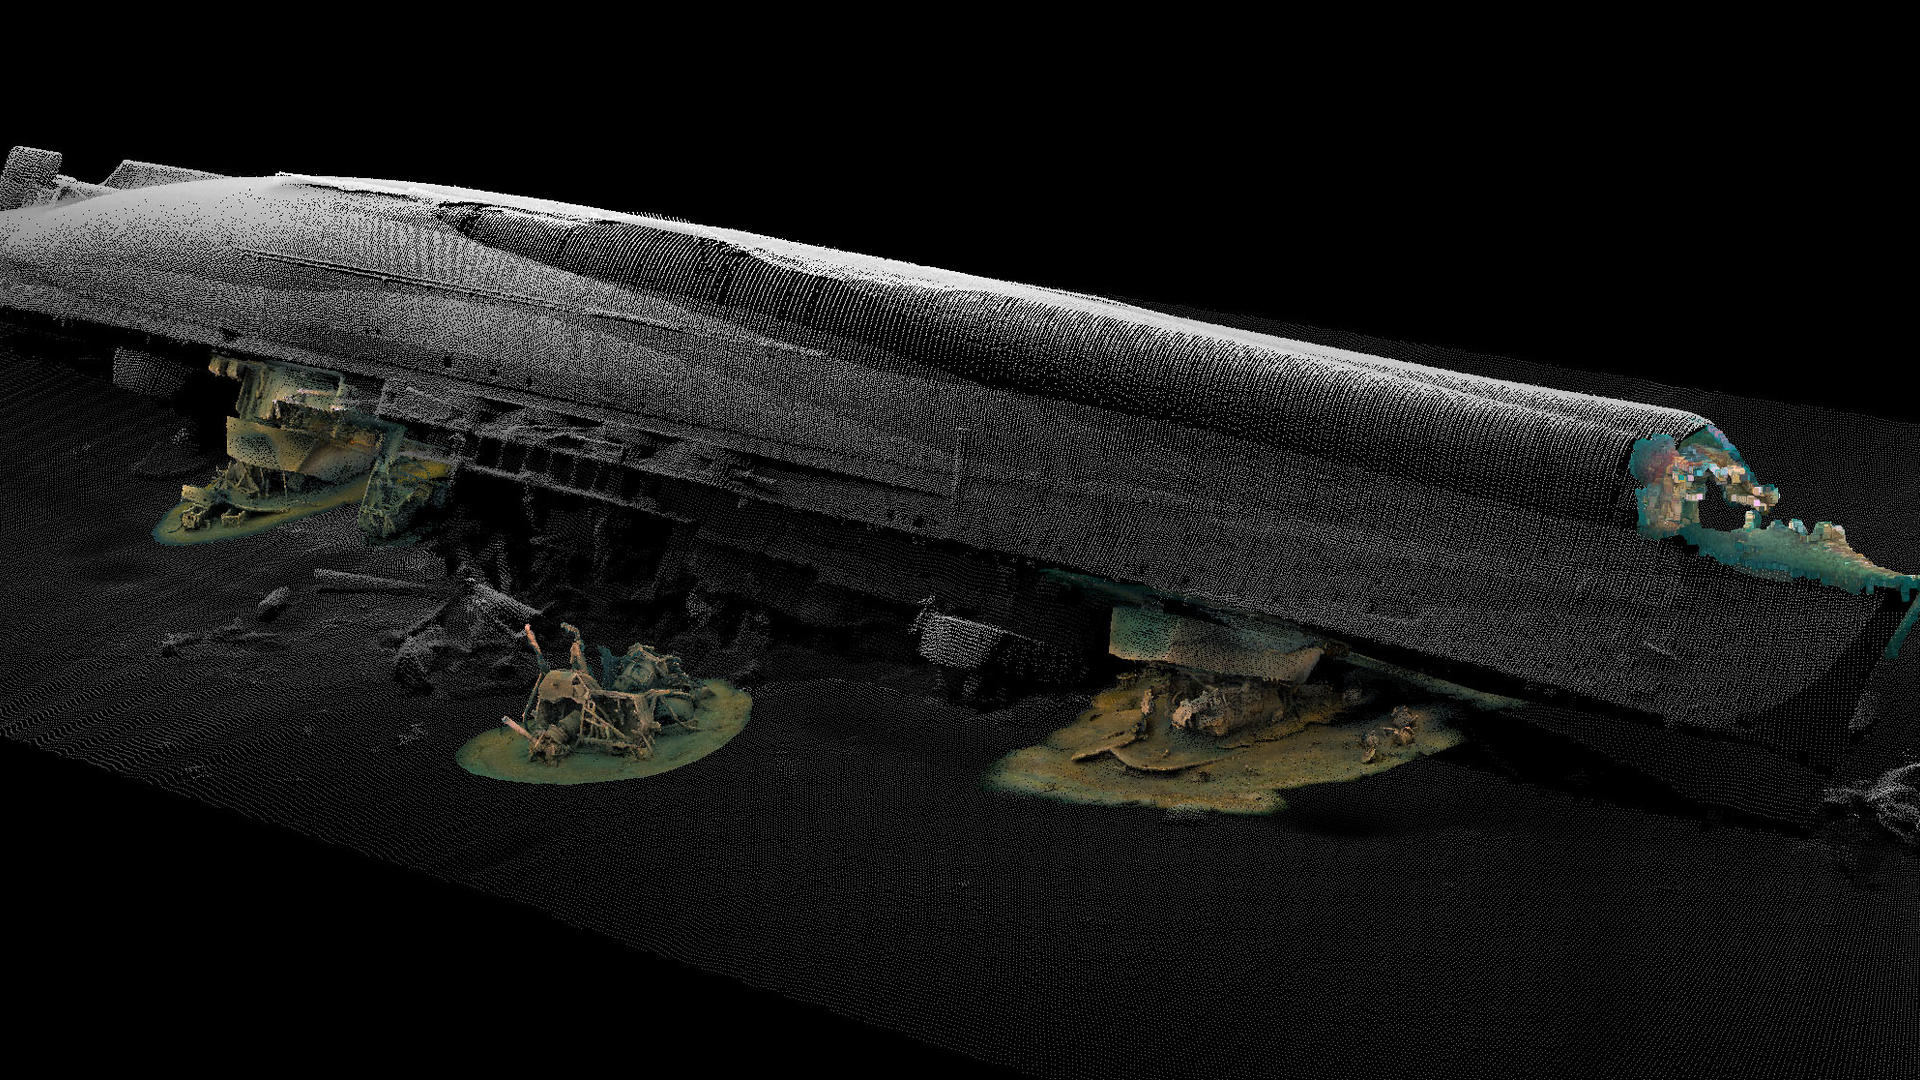 a 3d image of the Royal Oak wreck